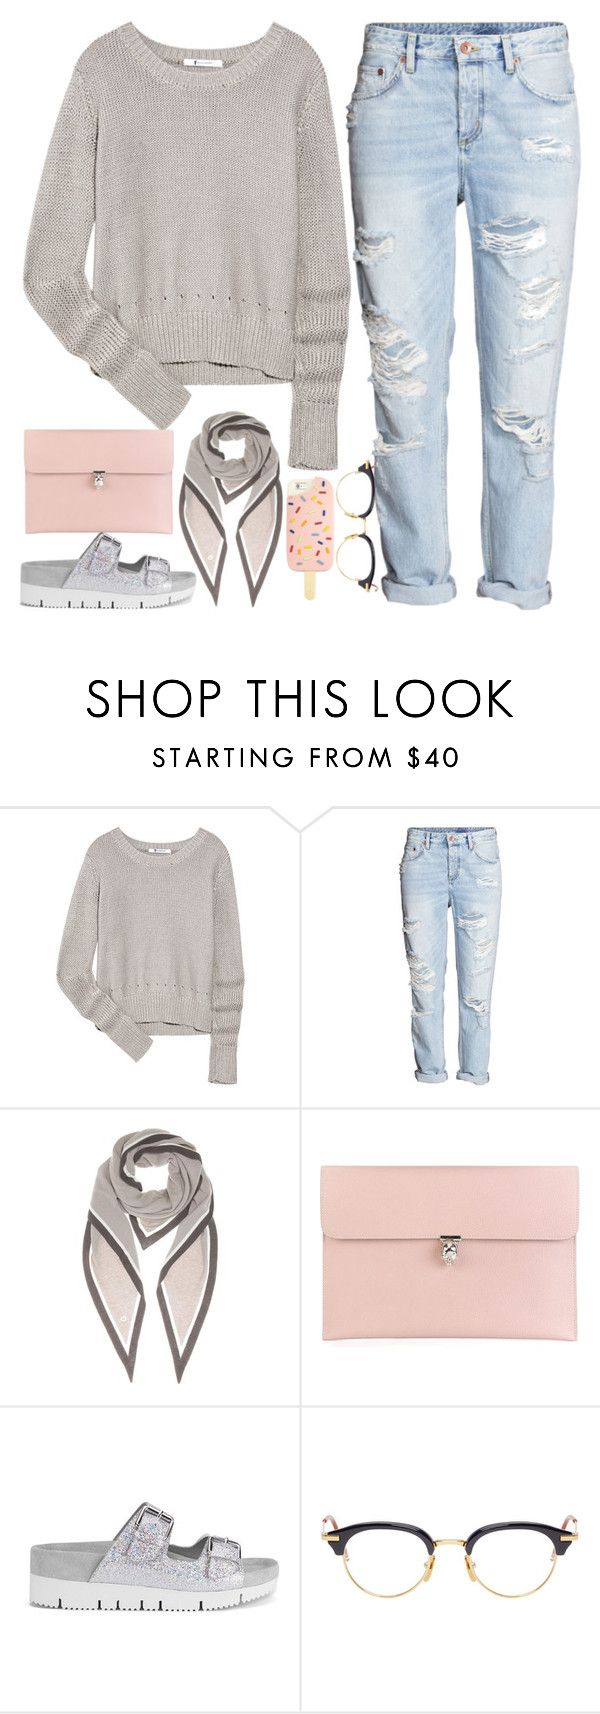 """Simply "" by nabilahfakhirah ❤ liked on Polyvore featuring T By Alexander Wang, H&M, Loro Piana, Alexander McQueen, Ash, Thom Browne, Tory Burch, women's clothing, women and female"